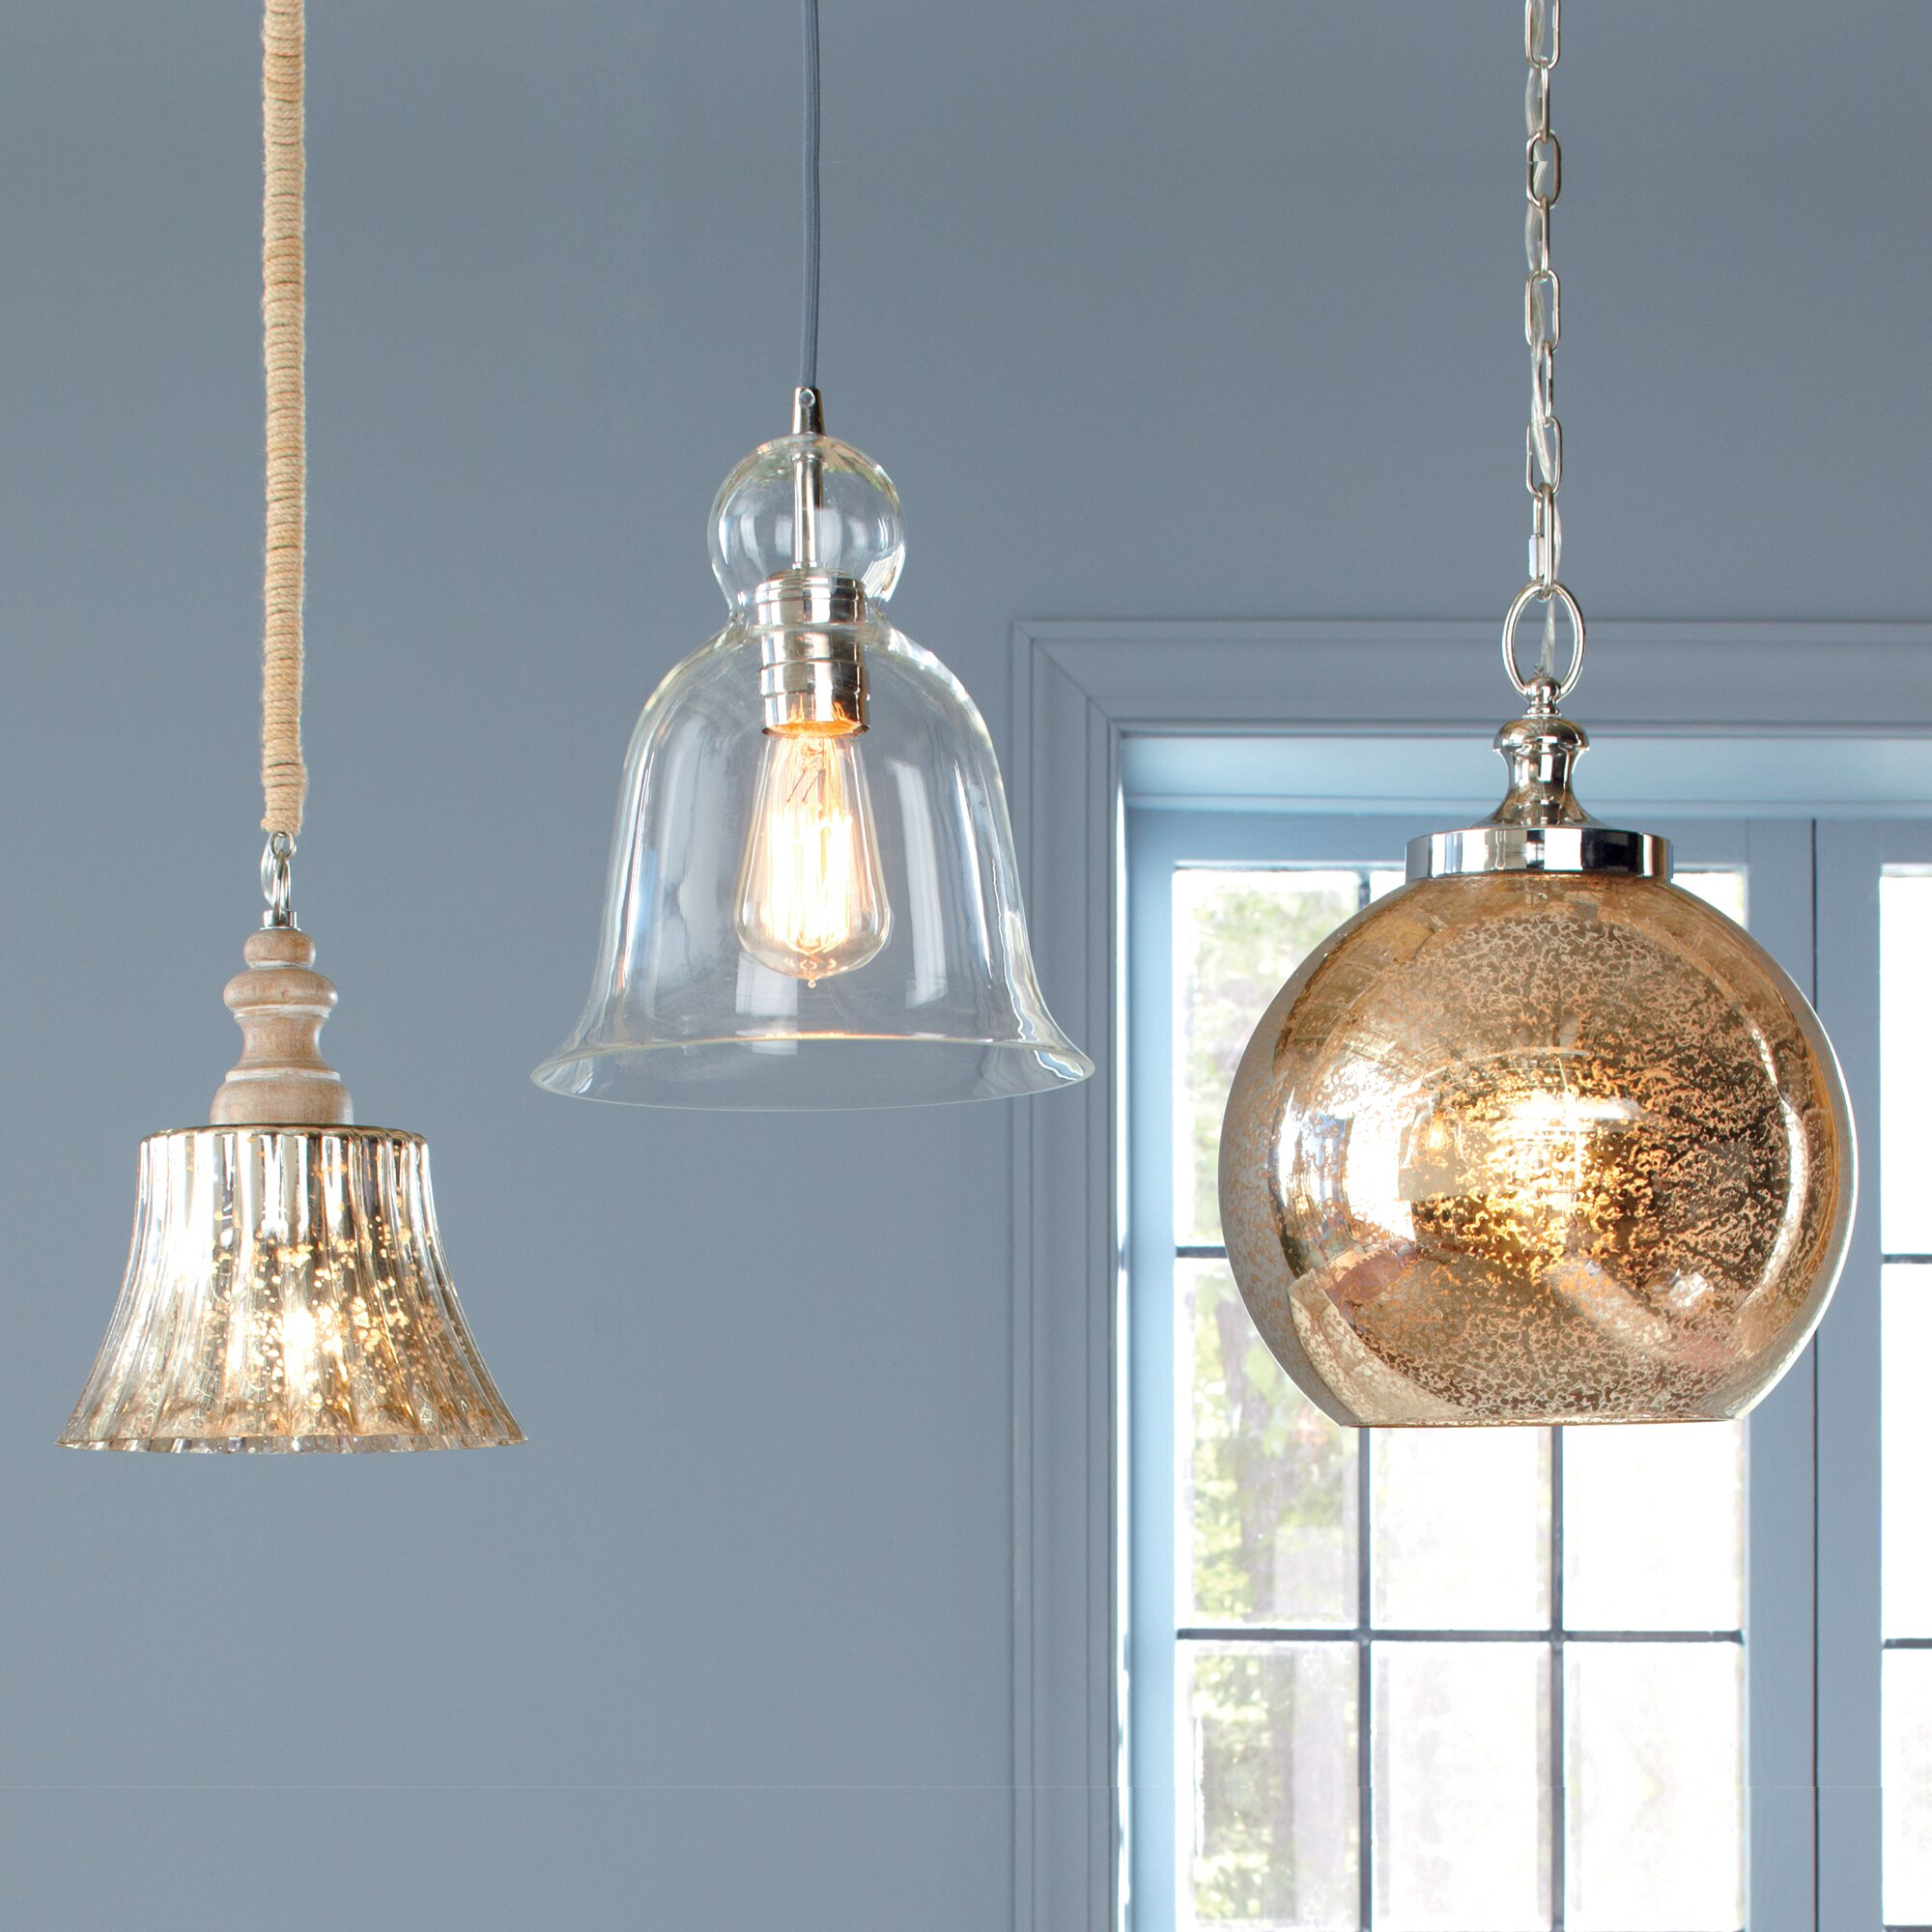 Wayfair Dining Room Lighting: Birch Lane Nadia Pendant & Reviews